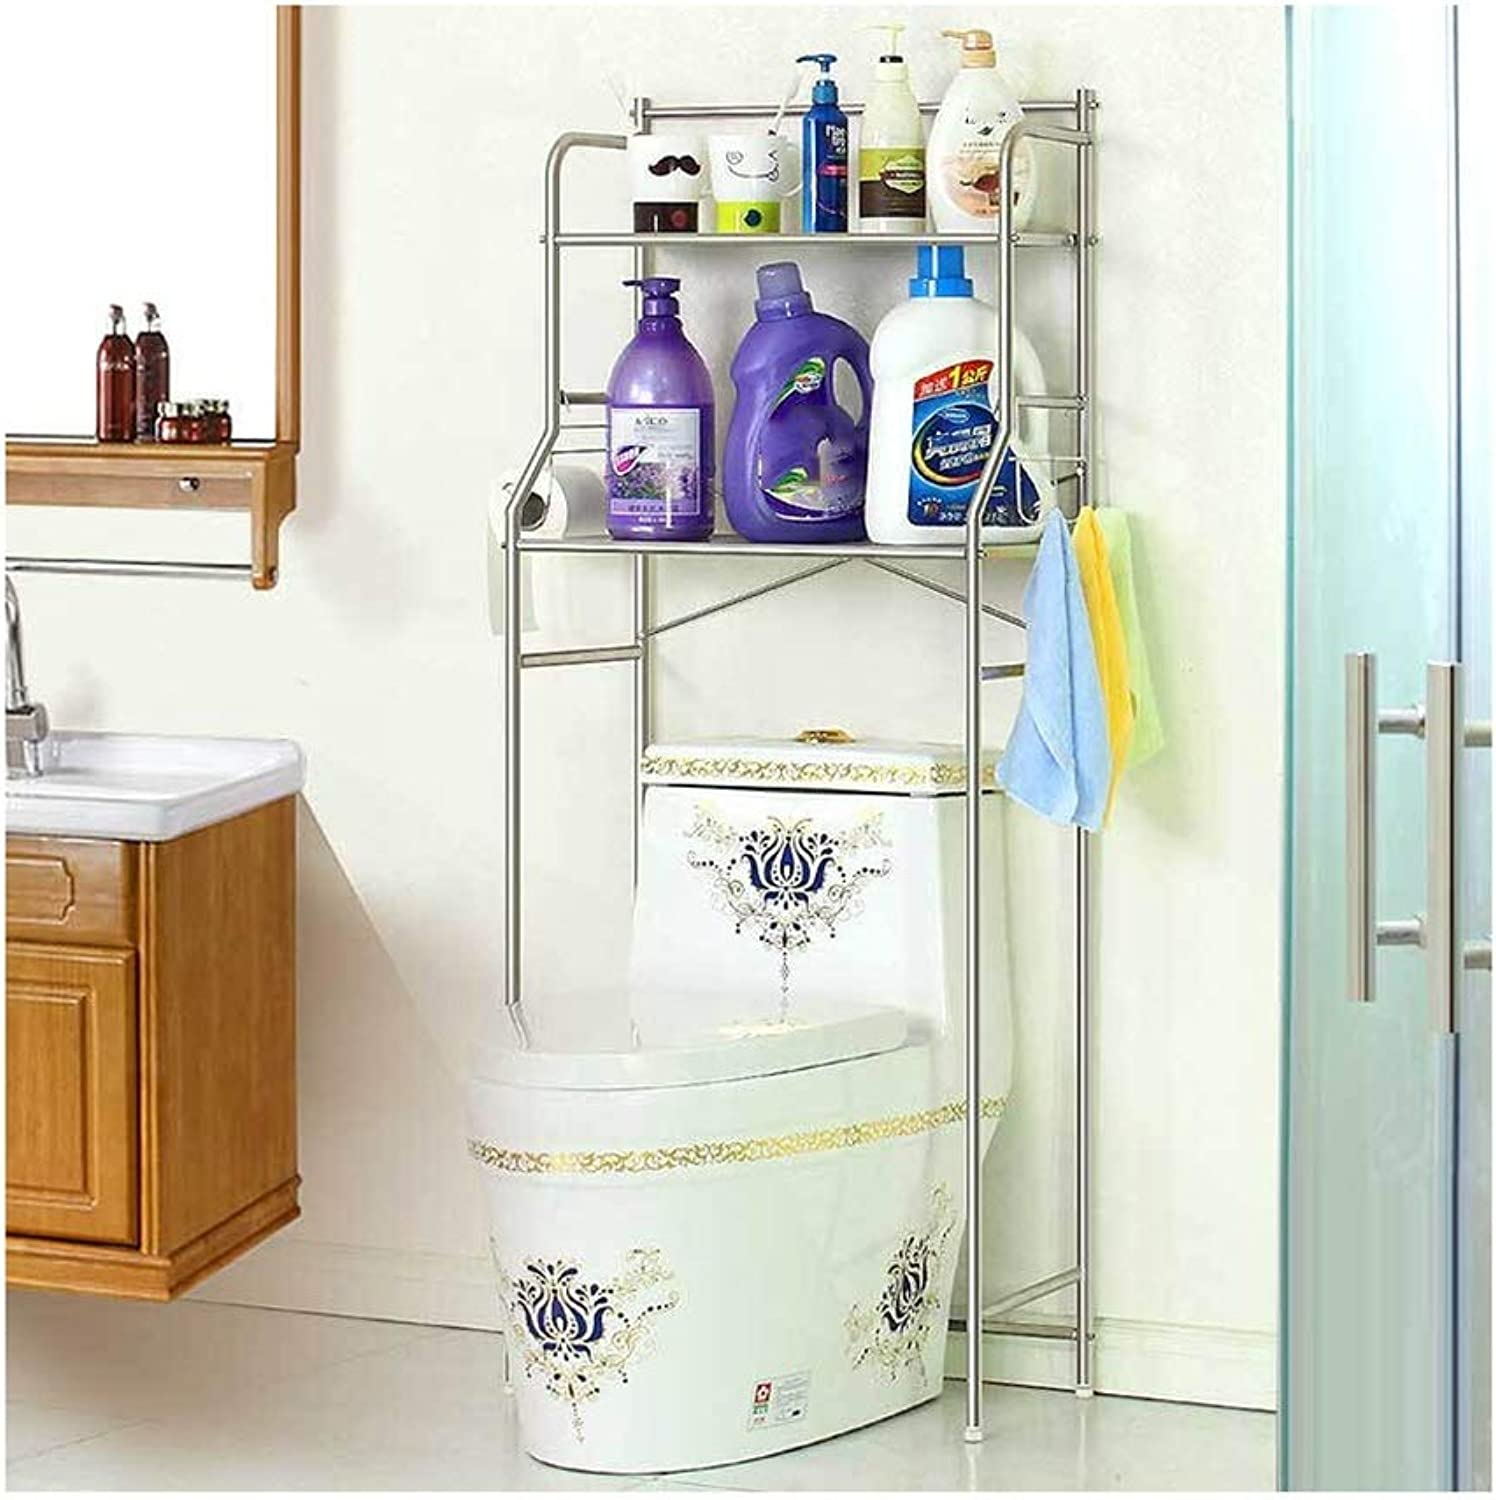 Kitchen Storage Rack Toilet Rack Bathroom Space Saver Multi-Layer Stainless Steel Storage Shelf Organisation (Size   H-140cm)